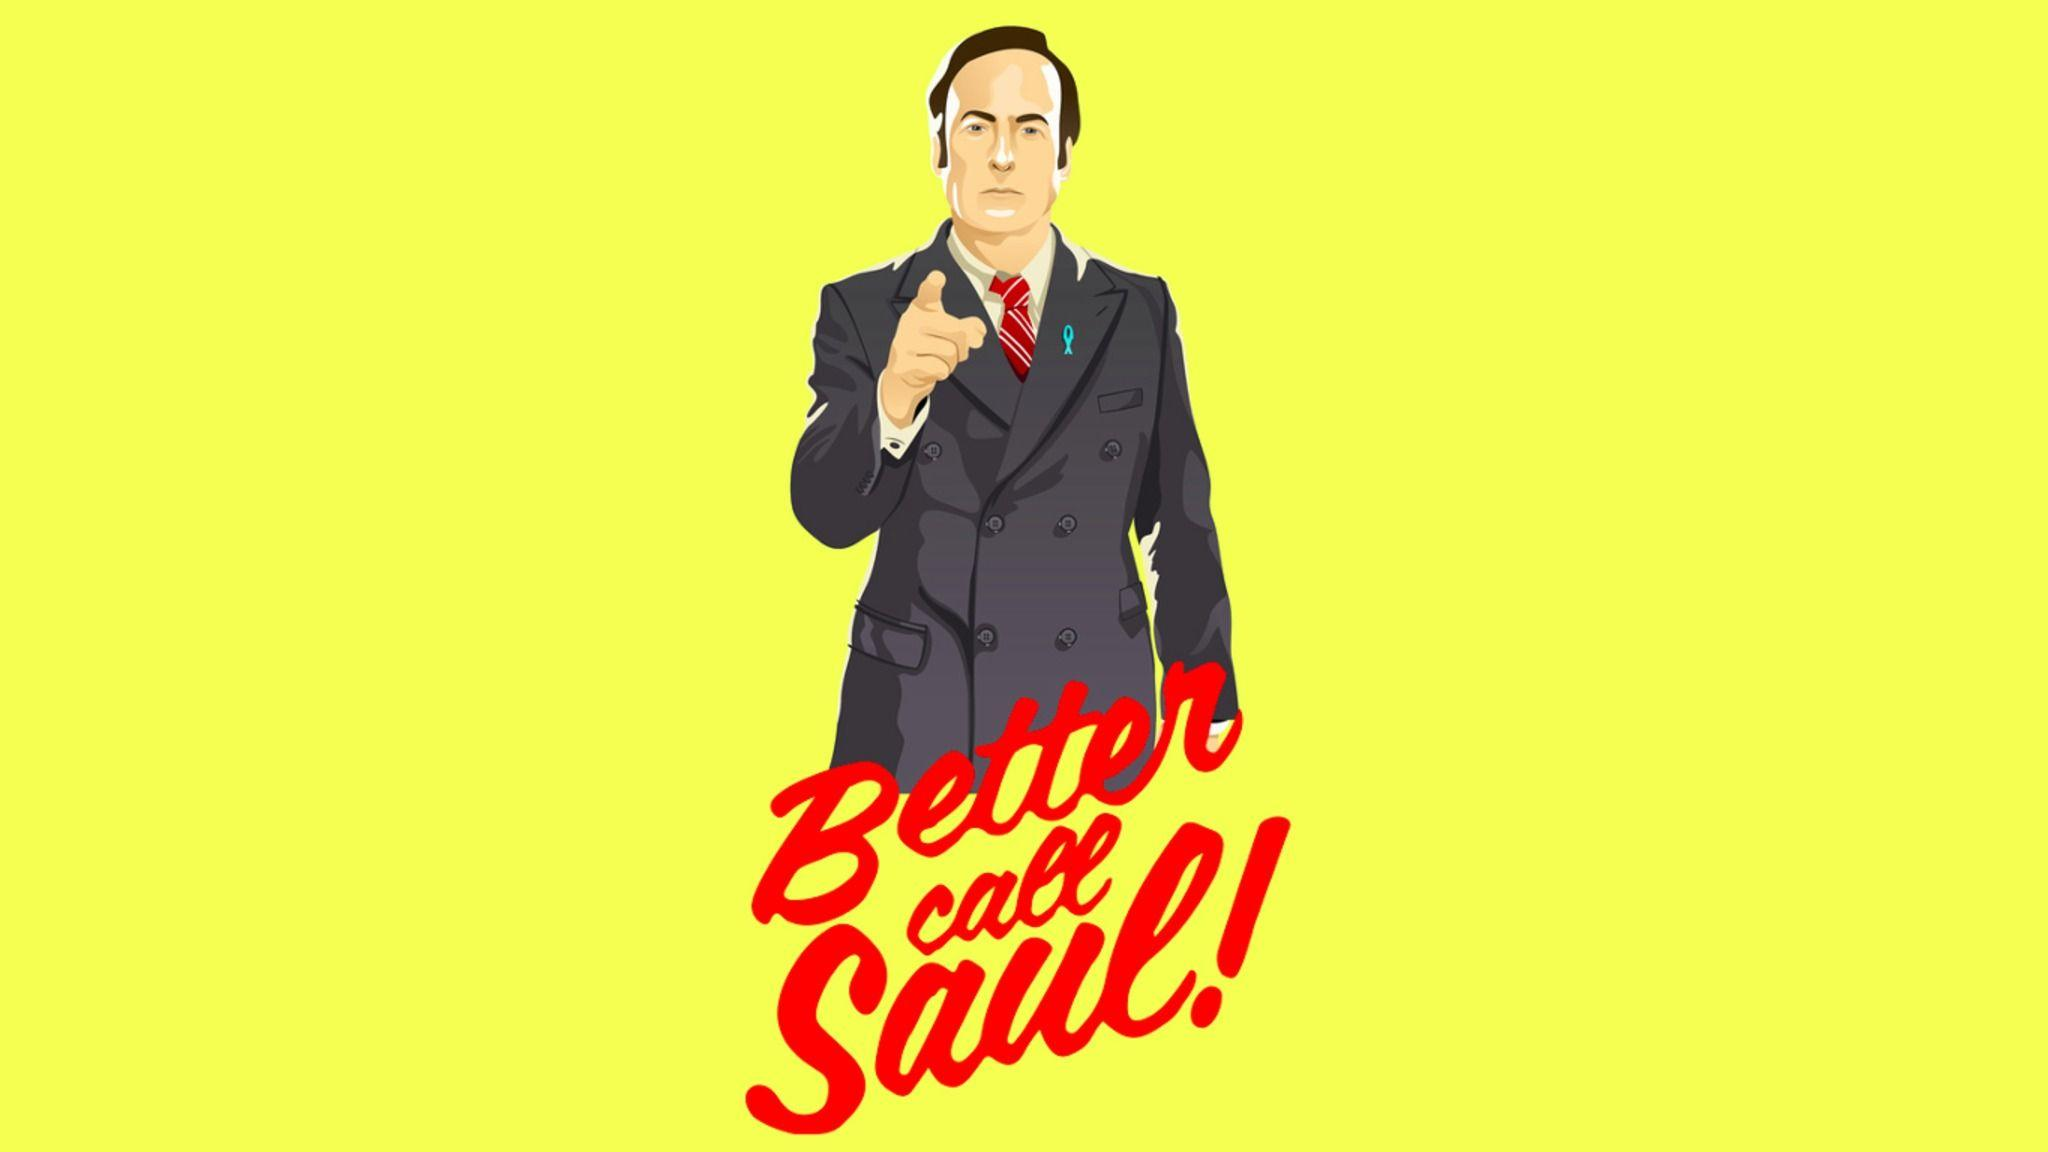 Better Call Saul Background 7